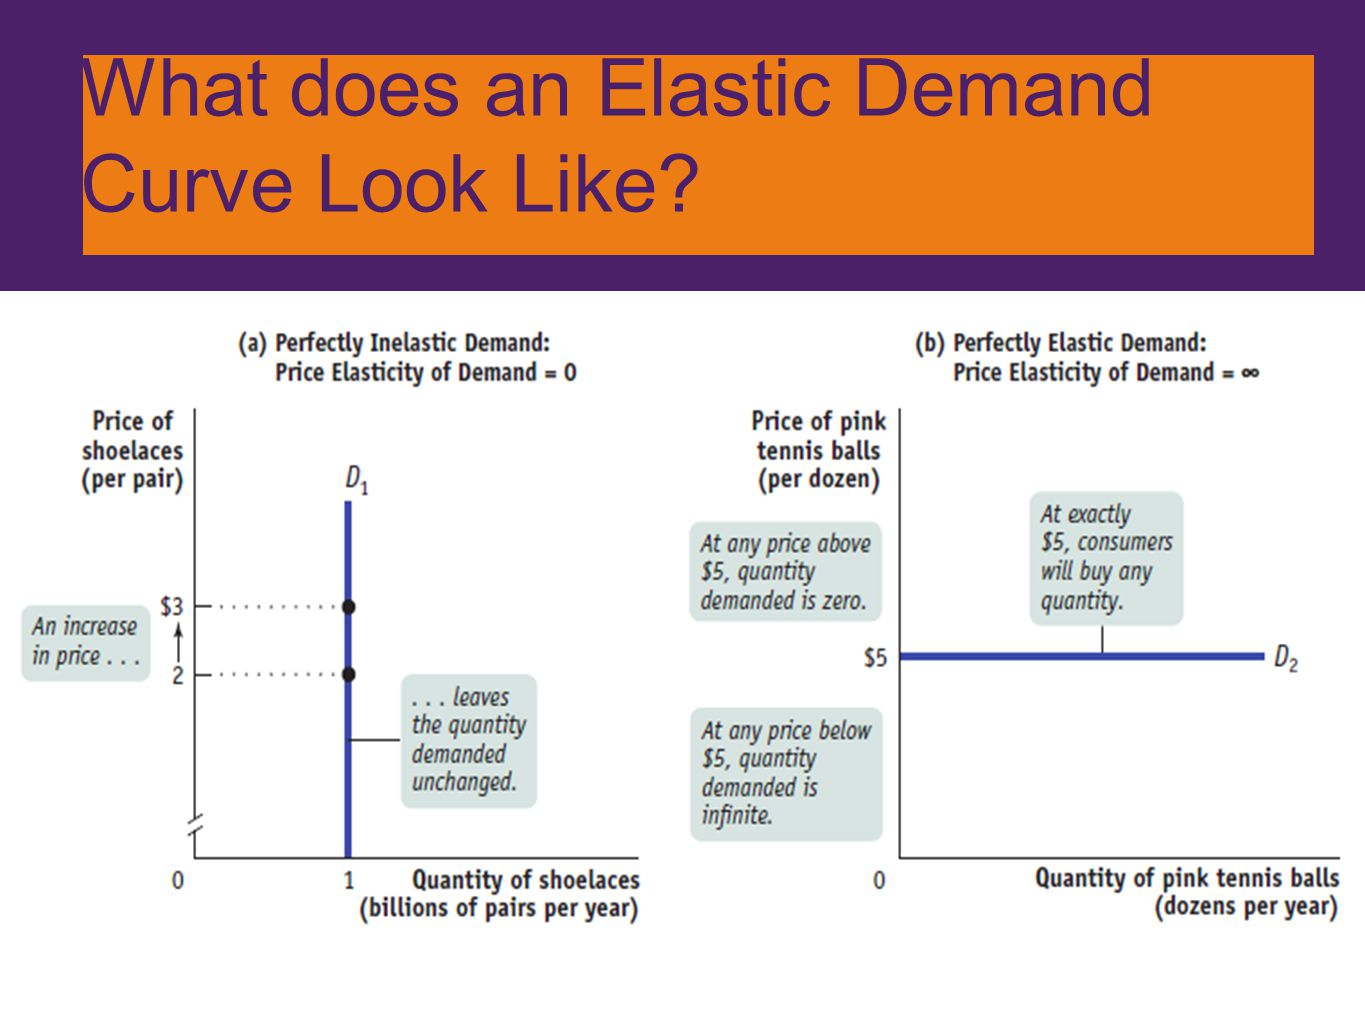 What does an Elastic Demand Curve Look Like